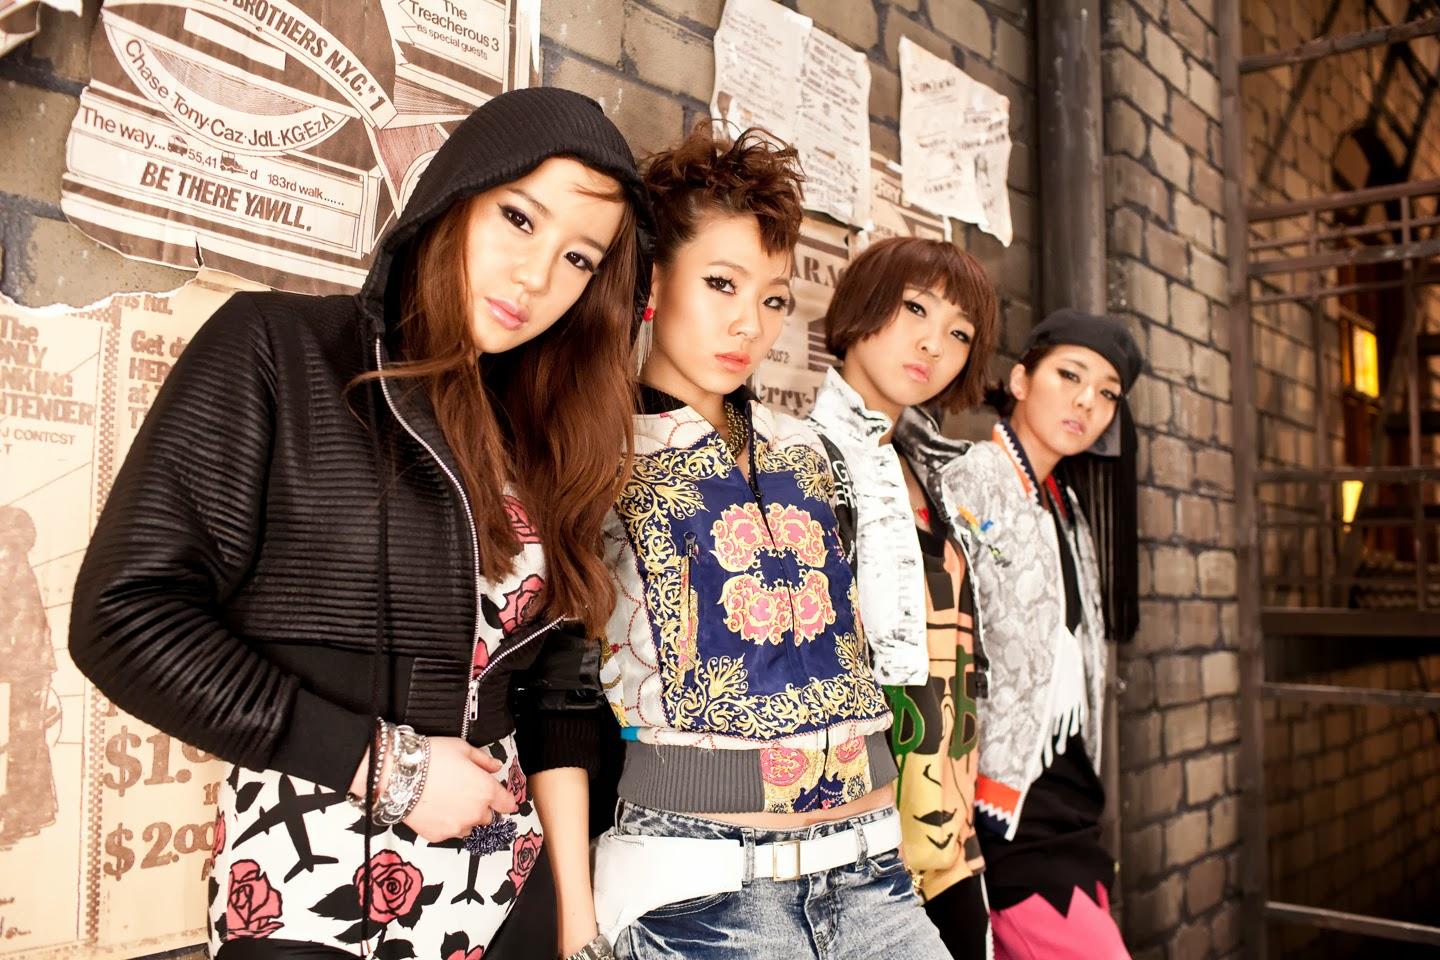 Free Wallpaper 2NE1 HD Deloiz Wallpaper [1440x960